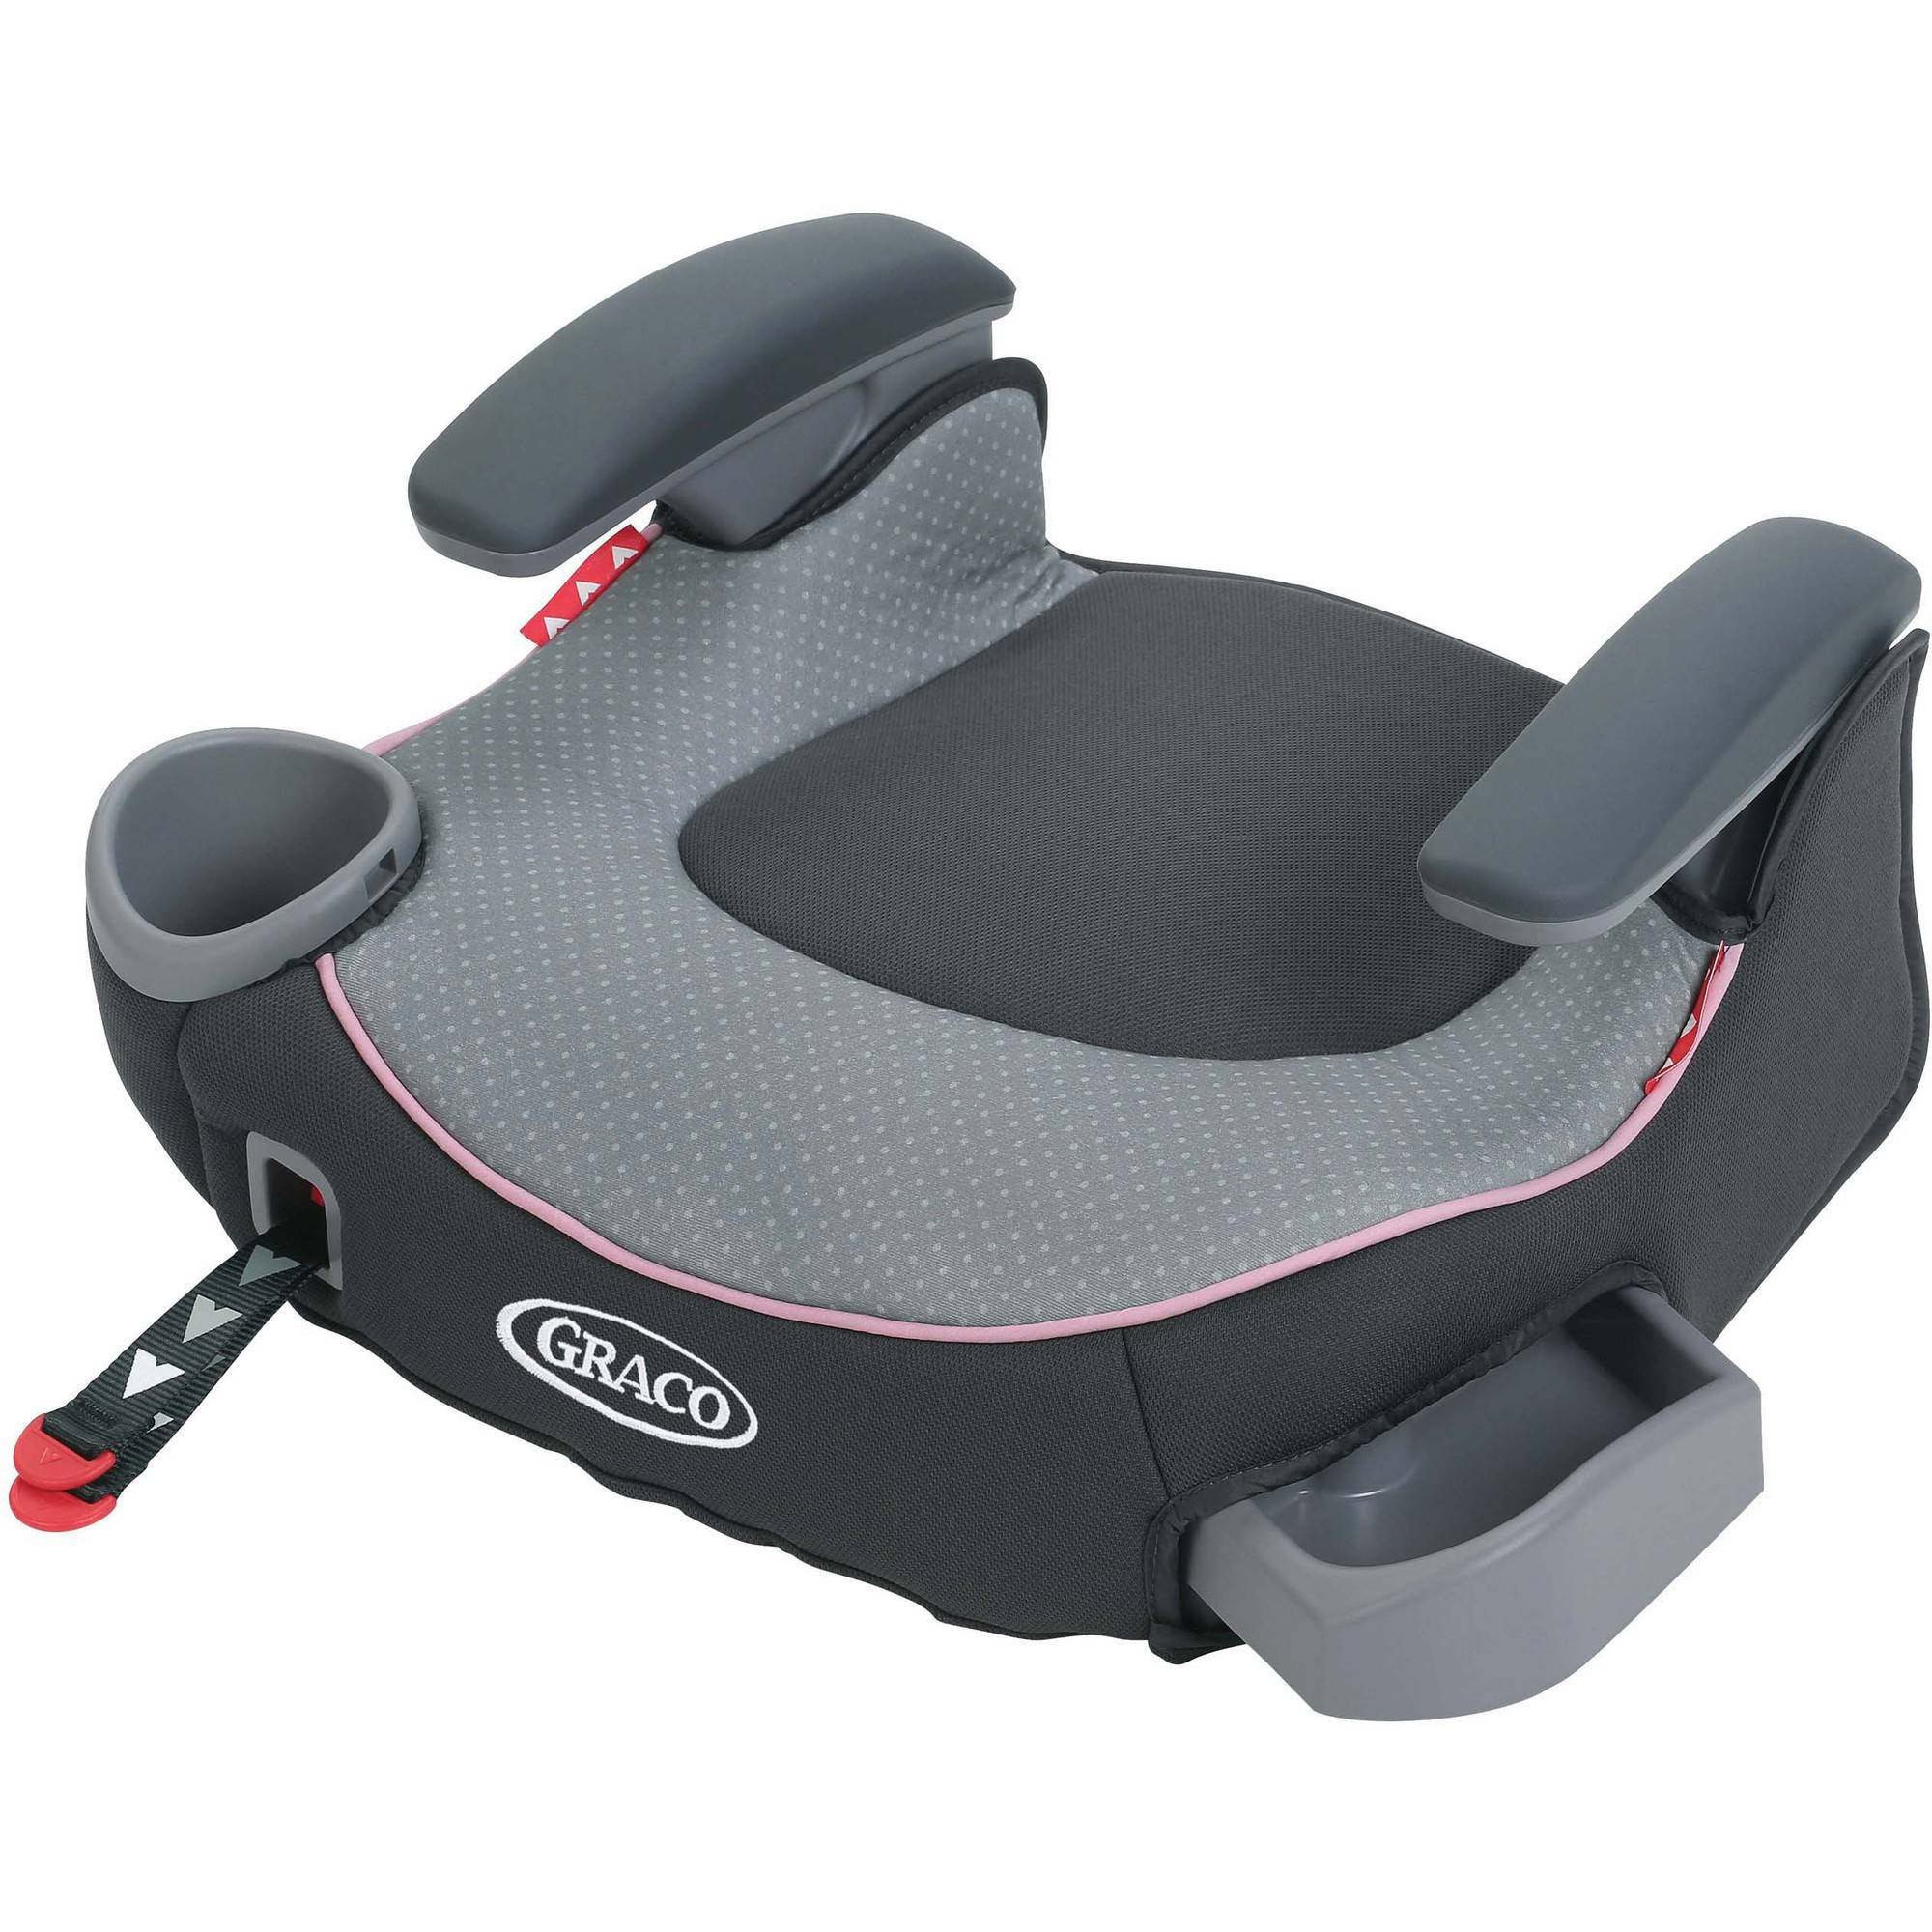 Graco Backless TurboBooster LX Booster Seat, Addison